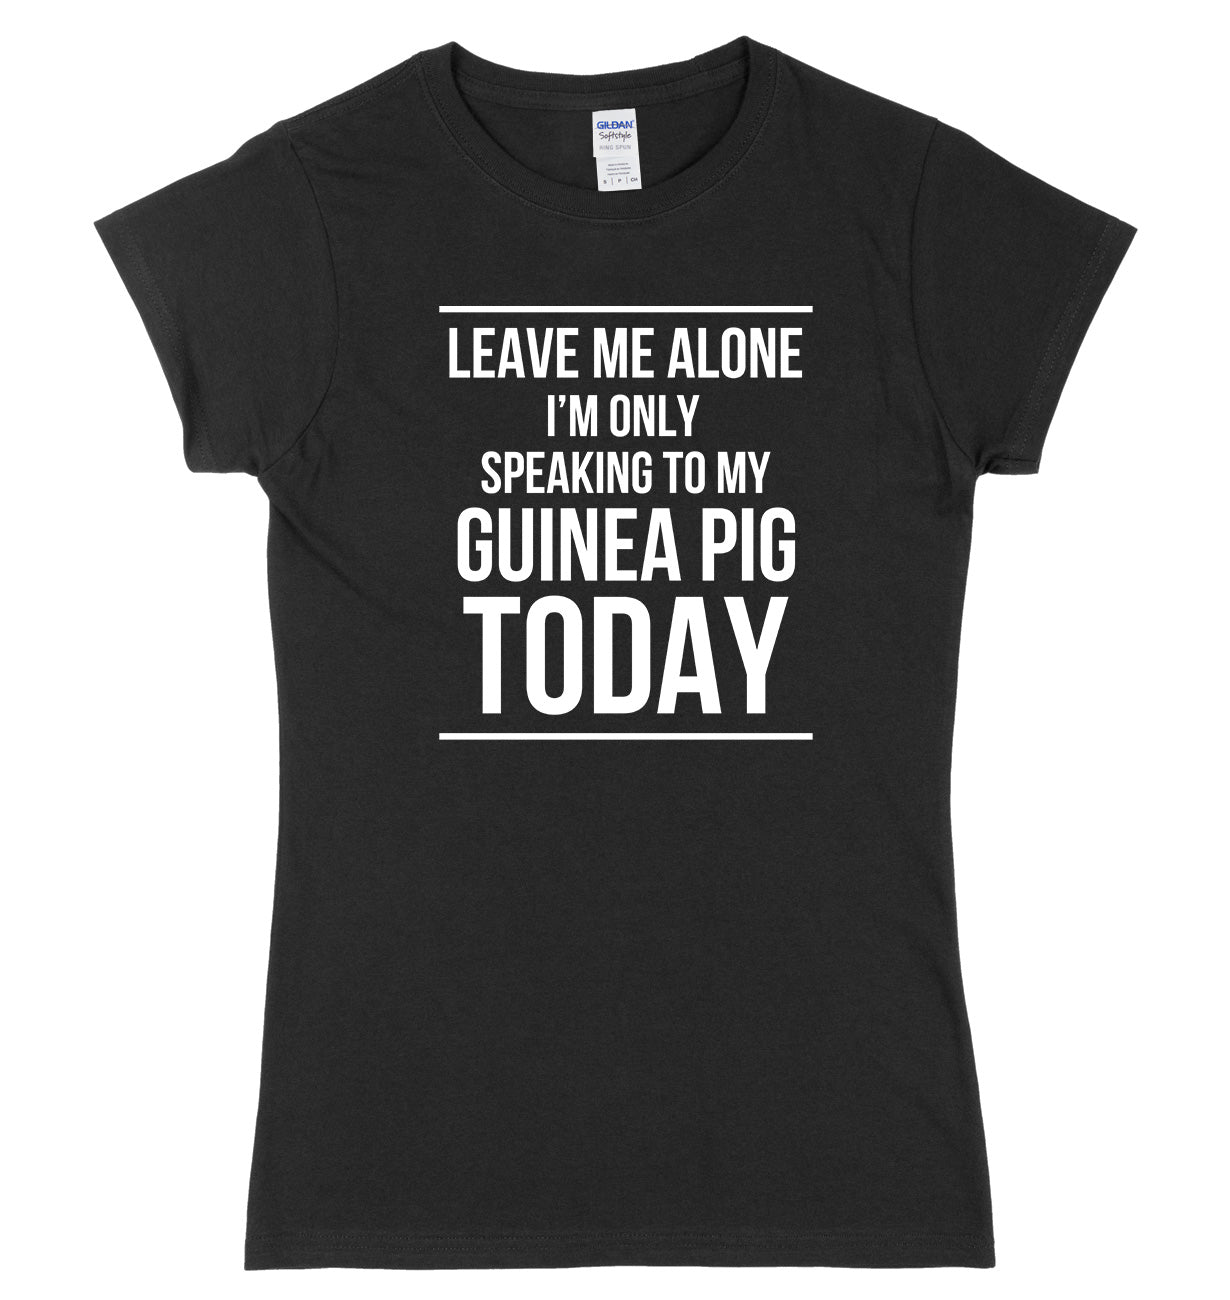 LEAVE ME ALONE I'M ONLY SPEAKING TO MY GUINEA PIG TODAY FUNNY WOMENS LADIES SLIM FIT  T-SHIRT